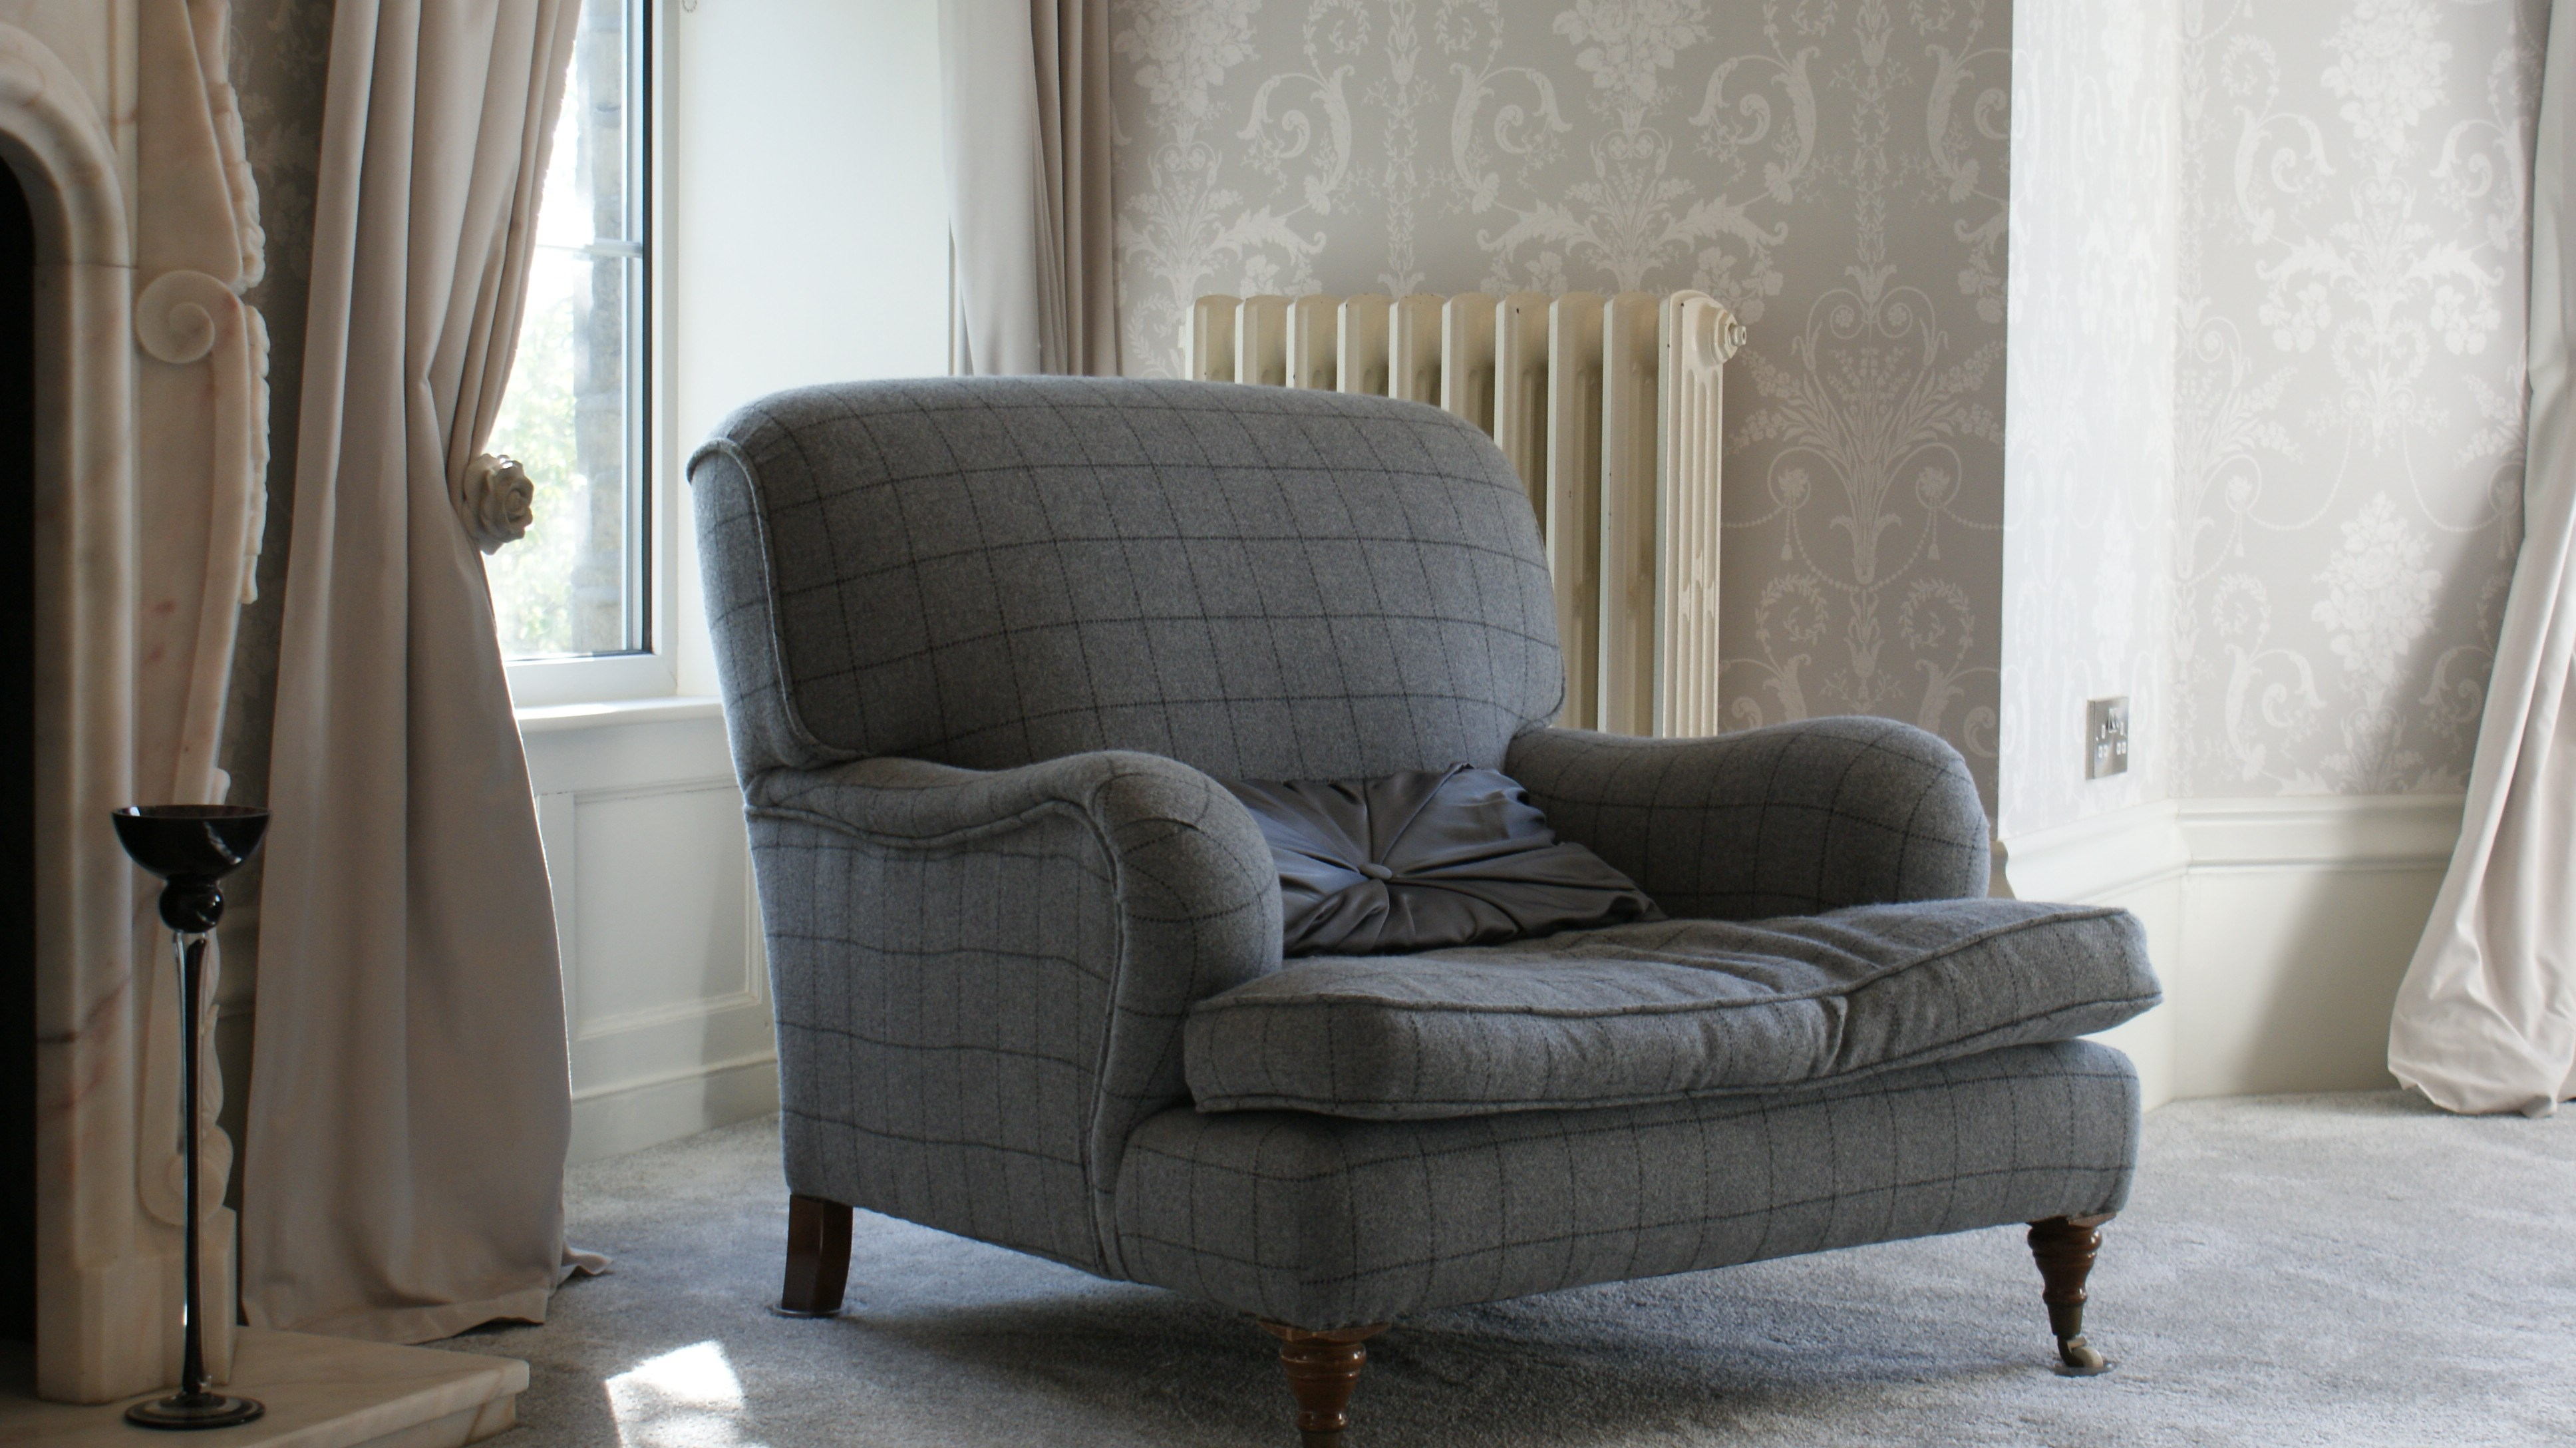 Armchair in grey fabric against backdrop of curtains